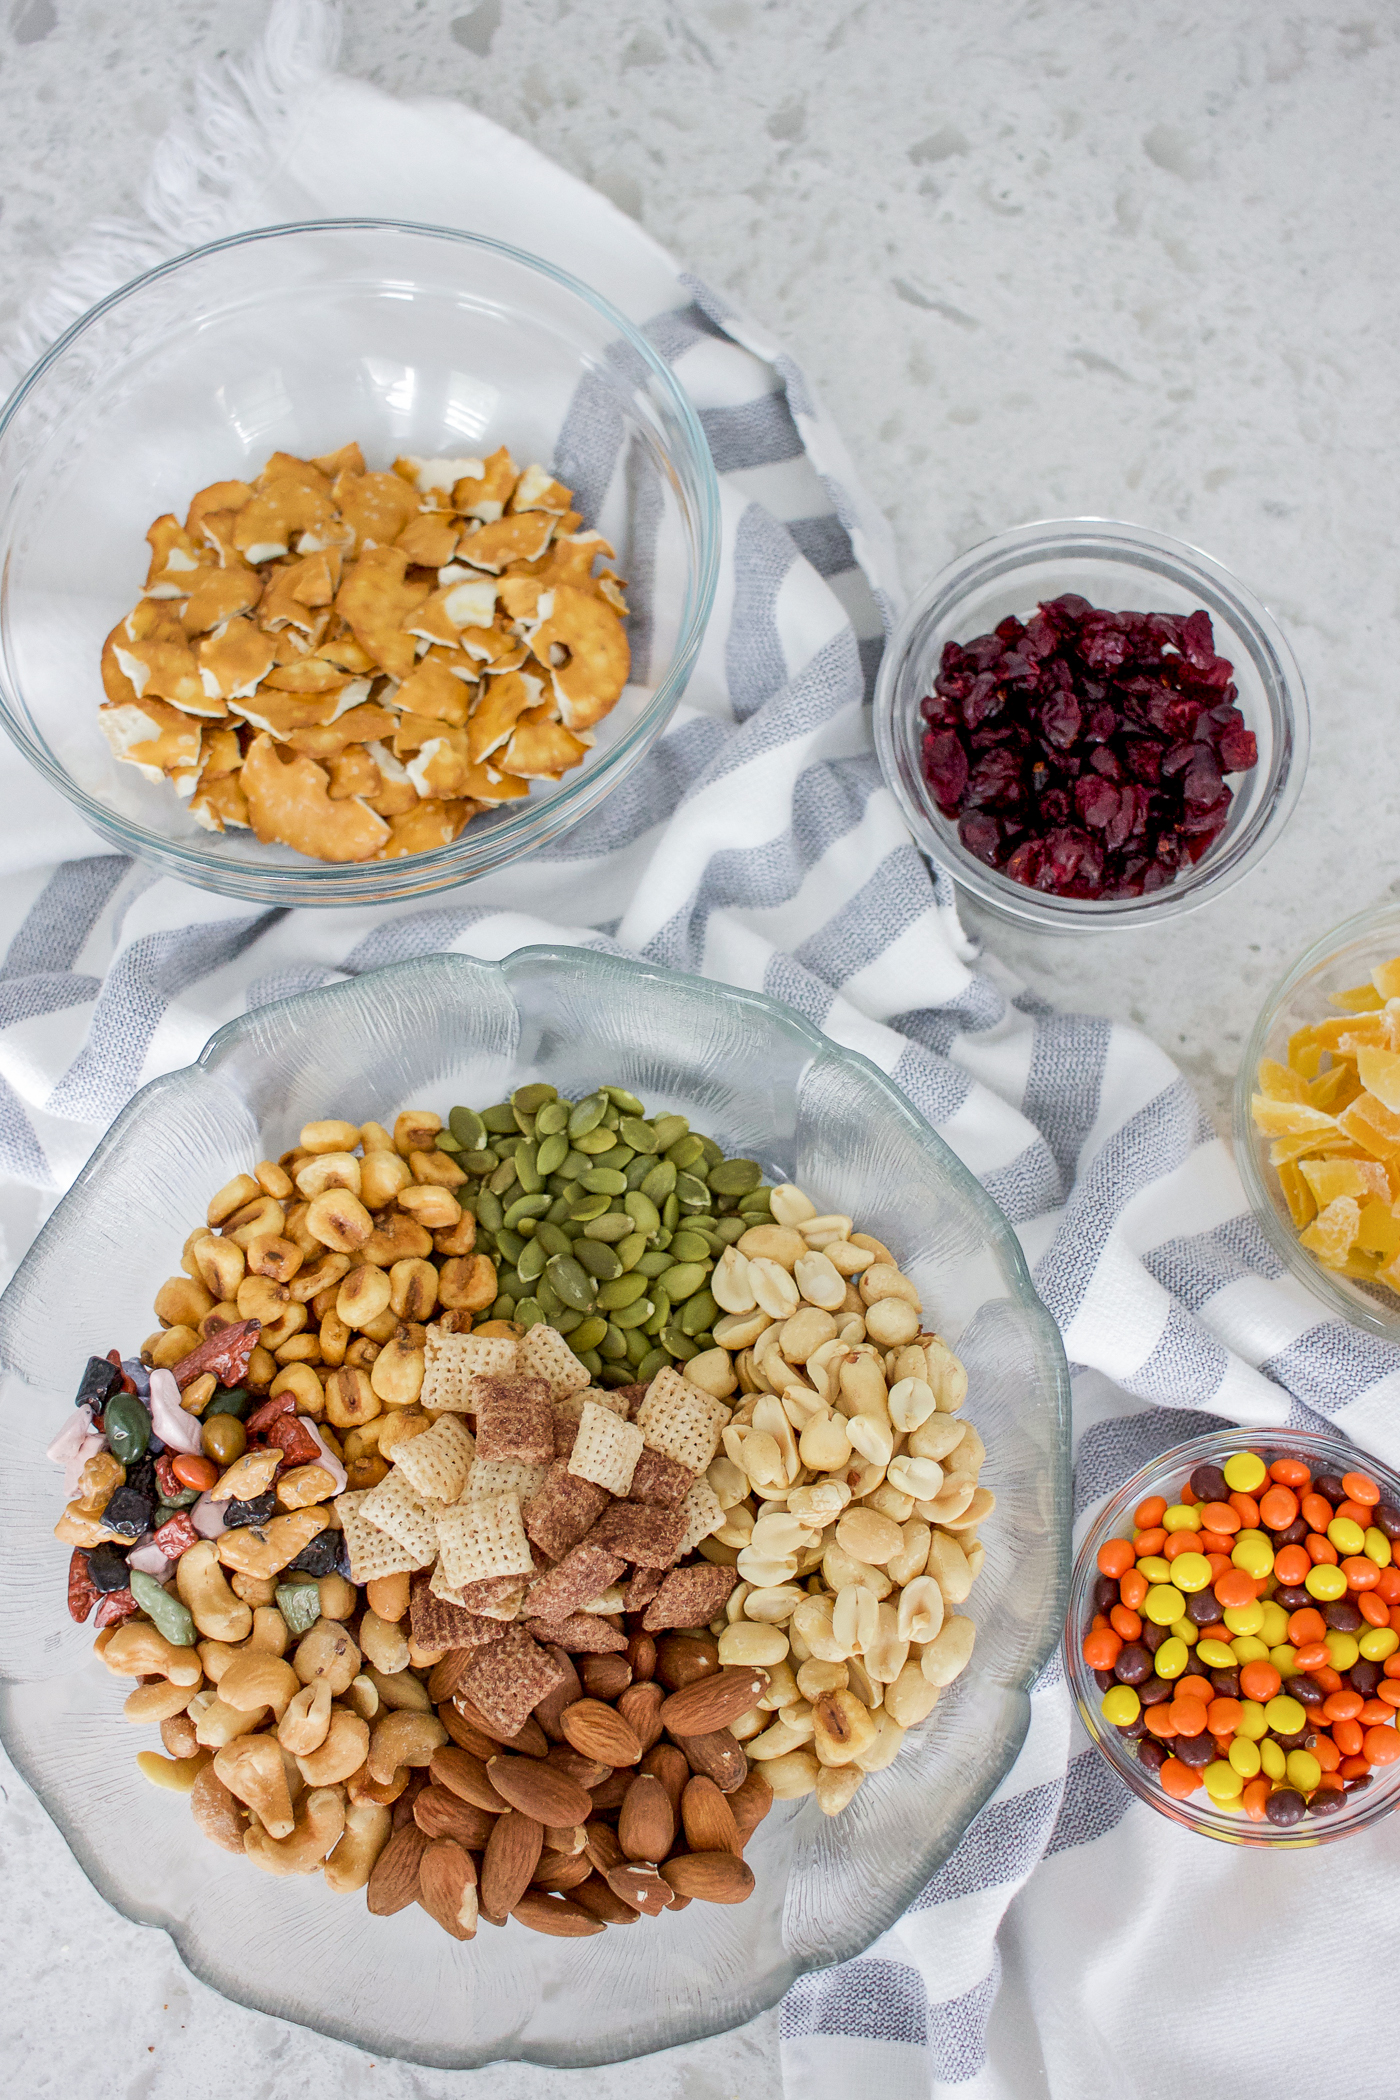 Simple trail mix recipe that has almonds, peanuts, pumpkin seeds, chocolate chex, corn nuts and more